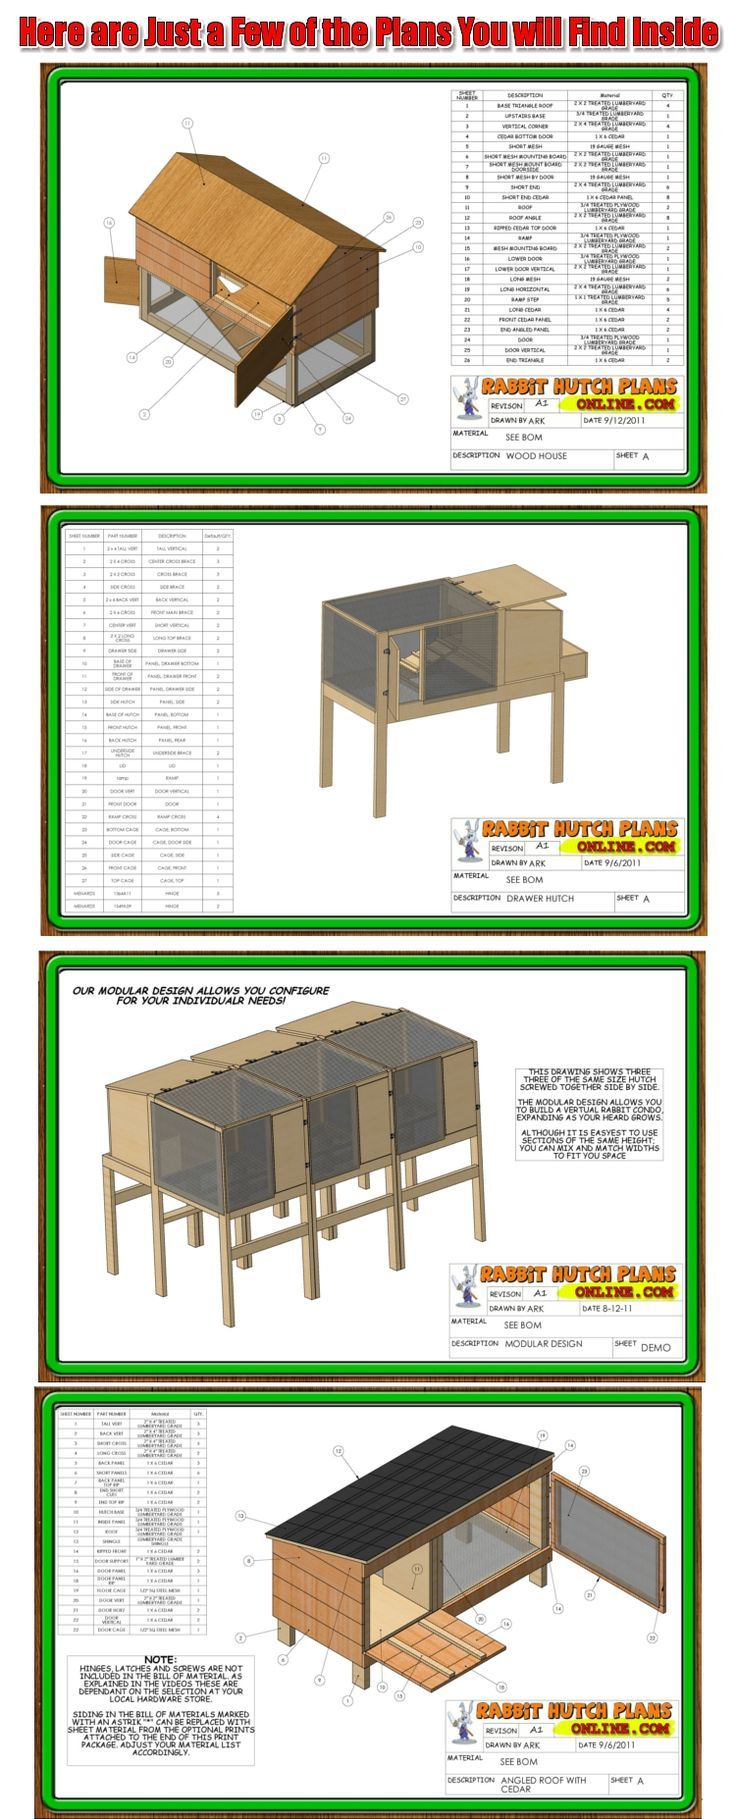 Rabbit hutch plan woodworking projects plans rabbits for Rabbit hutch plans easy